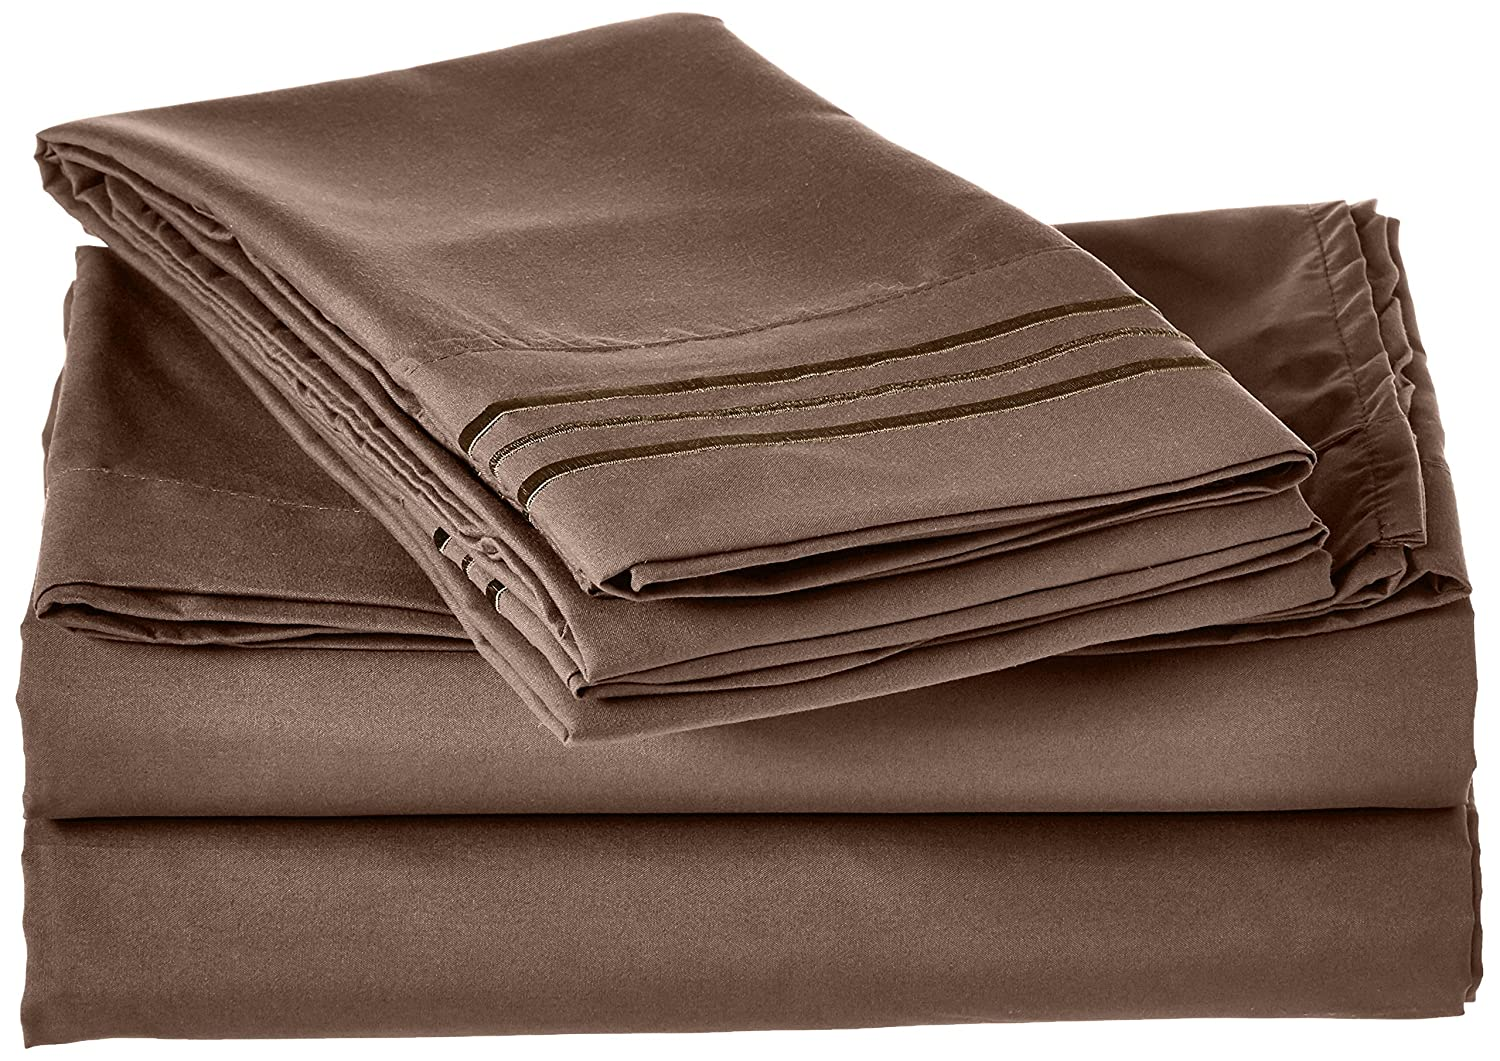 4-Piece Sheet Set, Full, Taupe